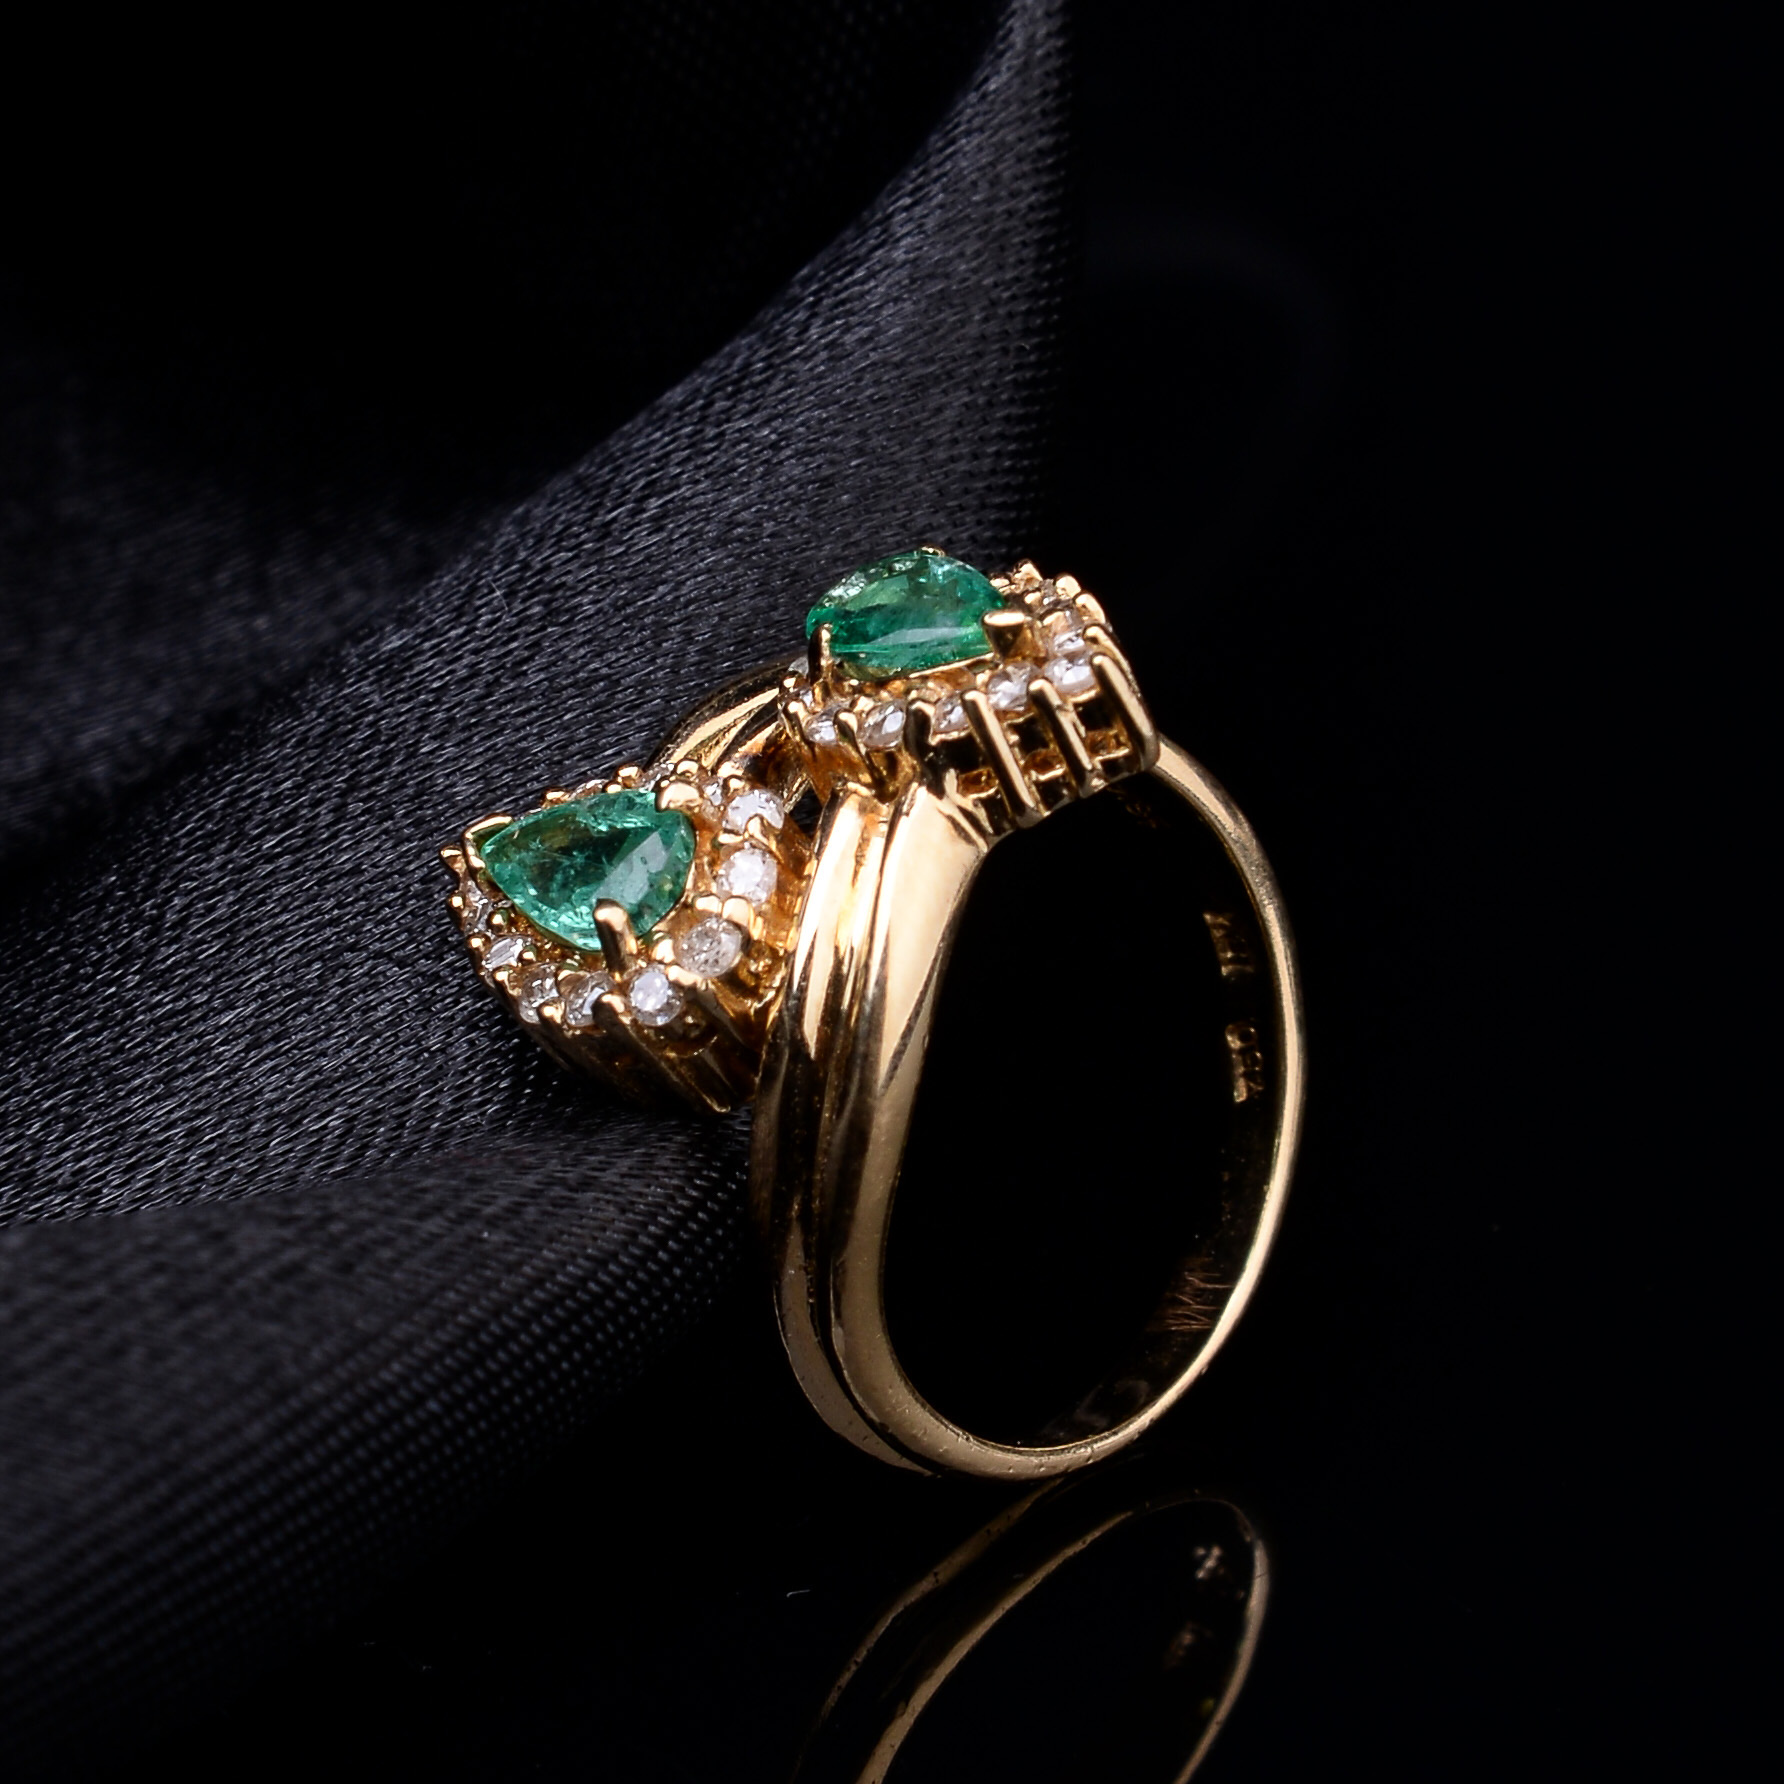 Lot 31 - Vintage Emerald and Diamond 'You & Me' Ring